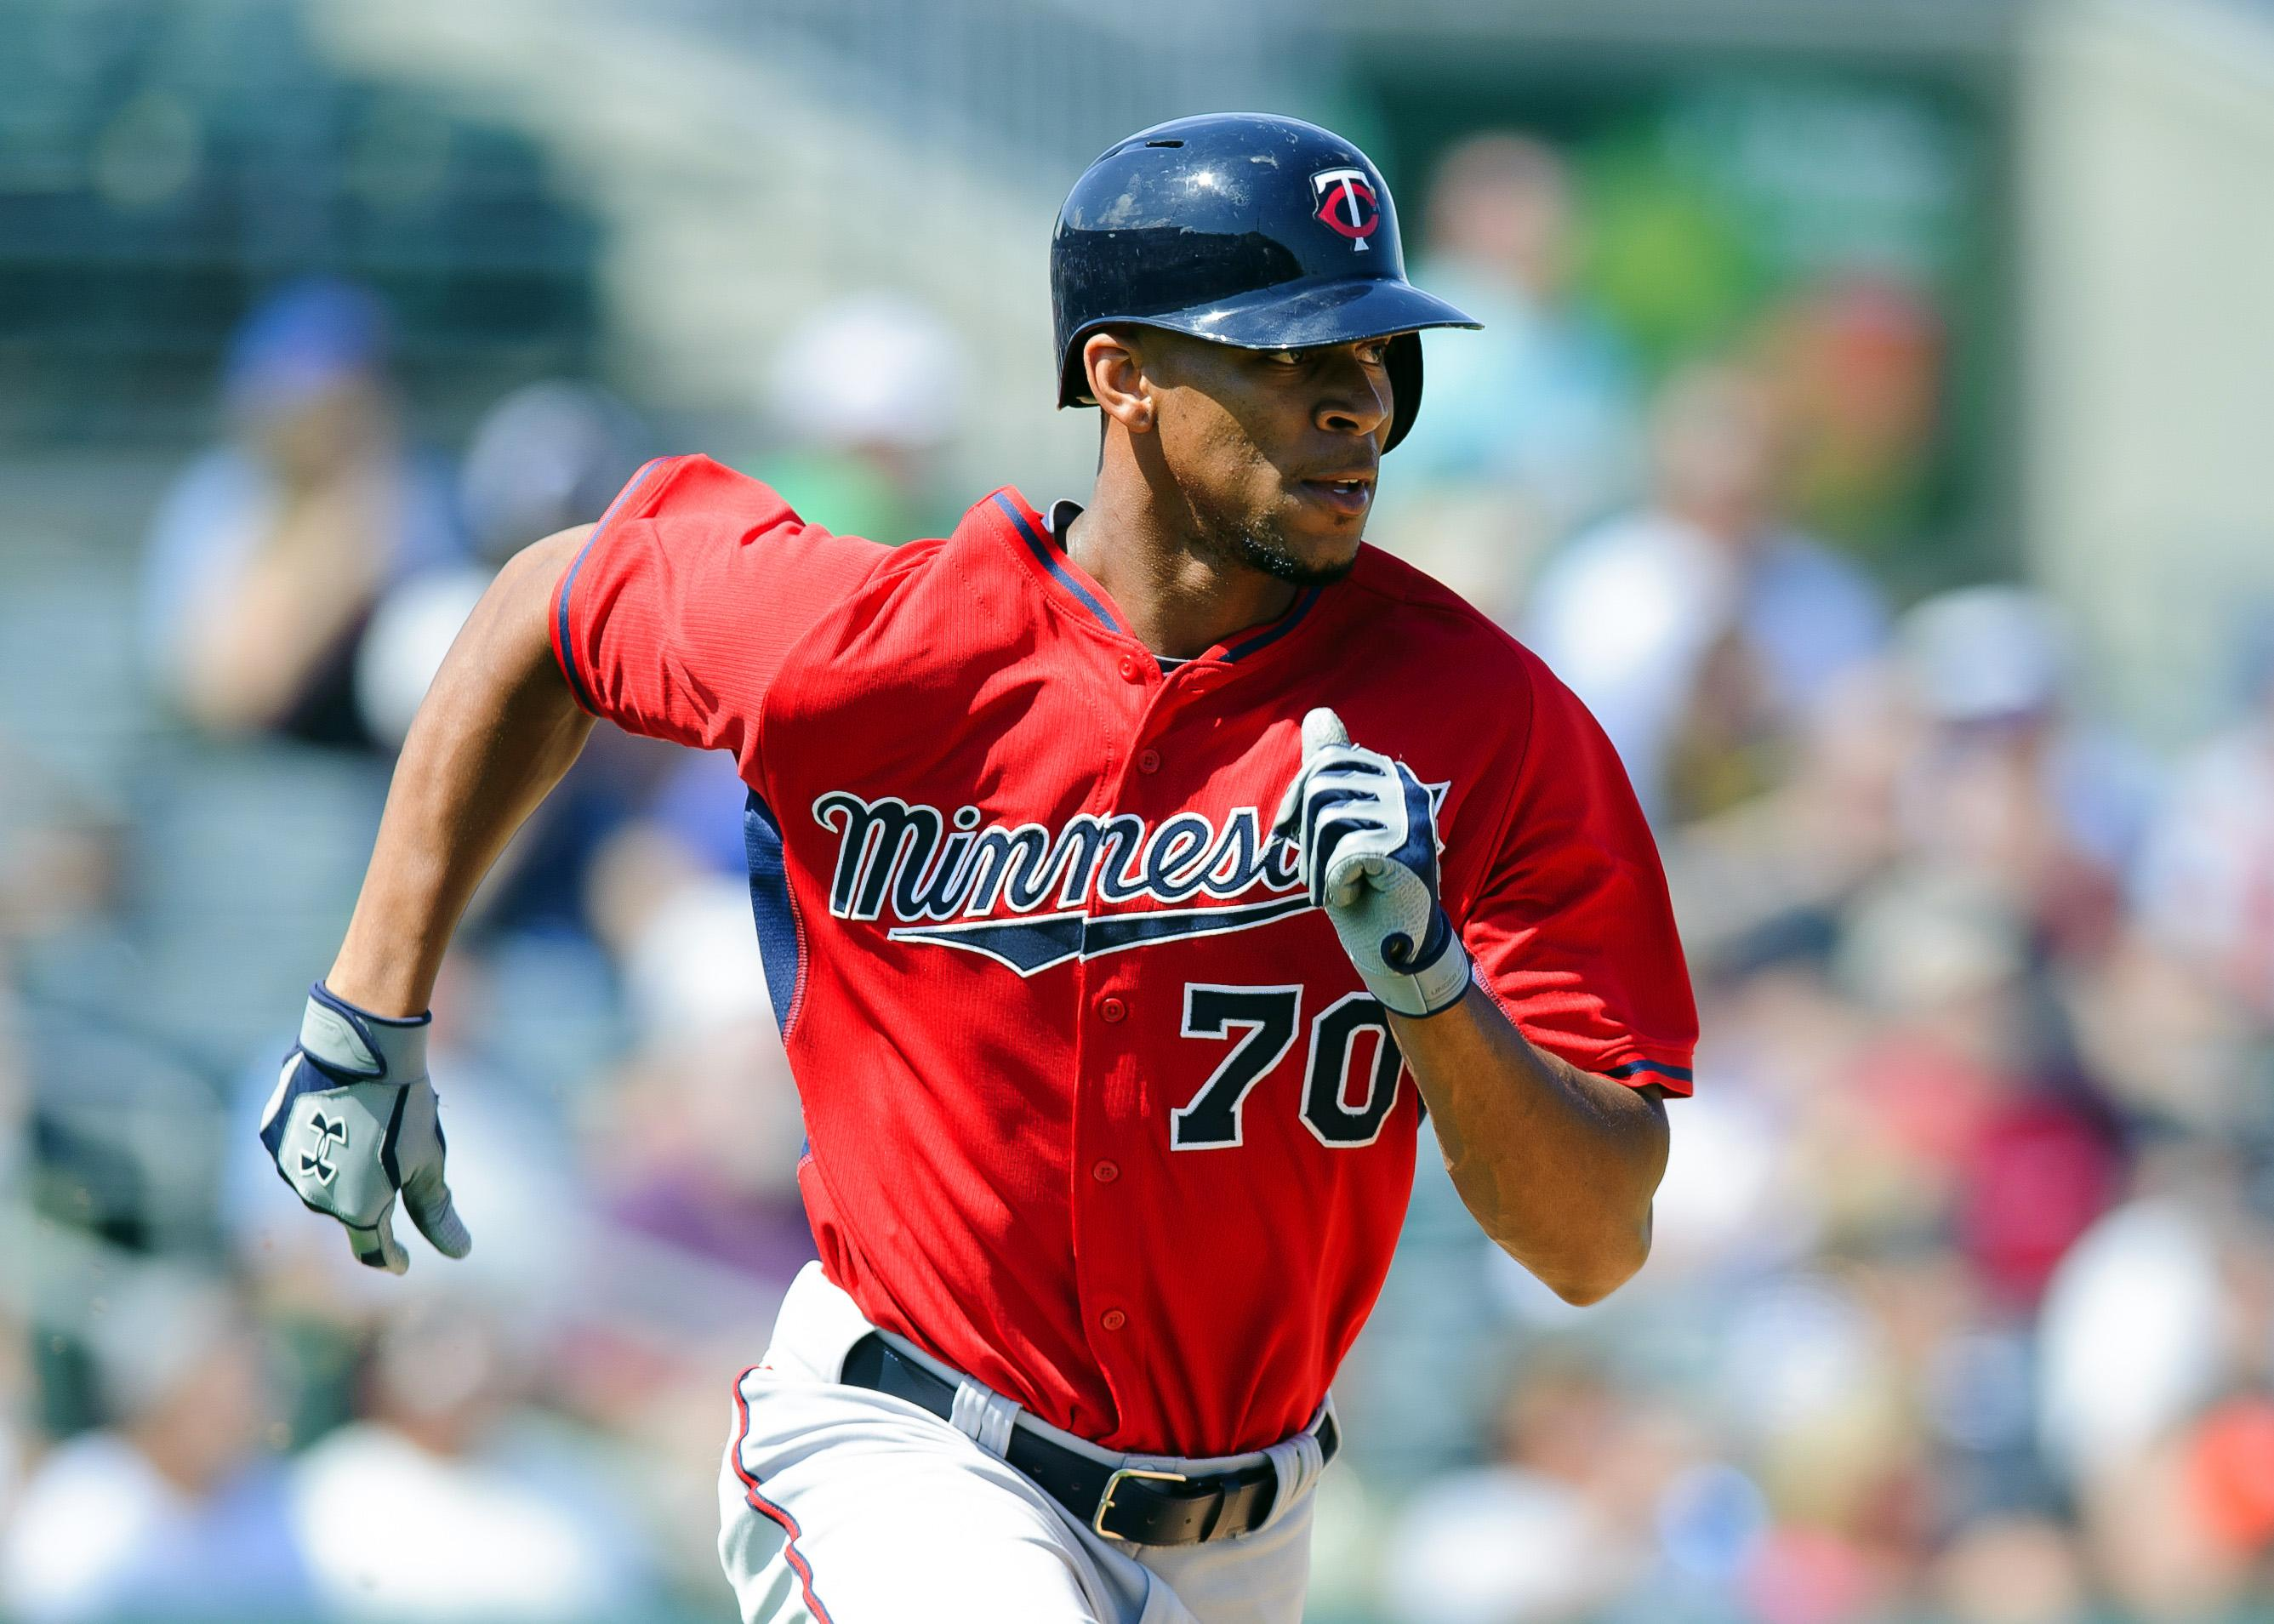 Byron Buxton remains No. 1 on MLB.com's prospect rankings